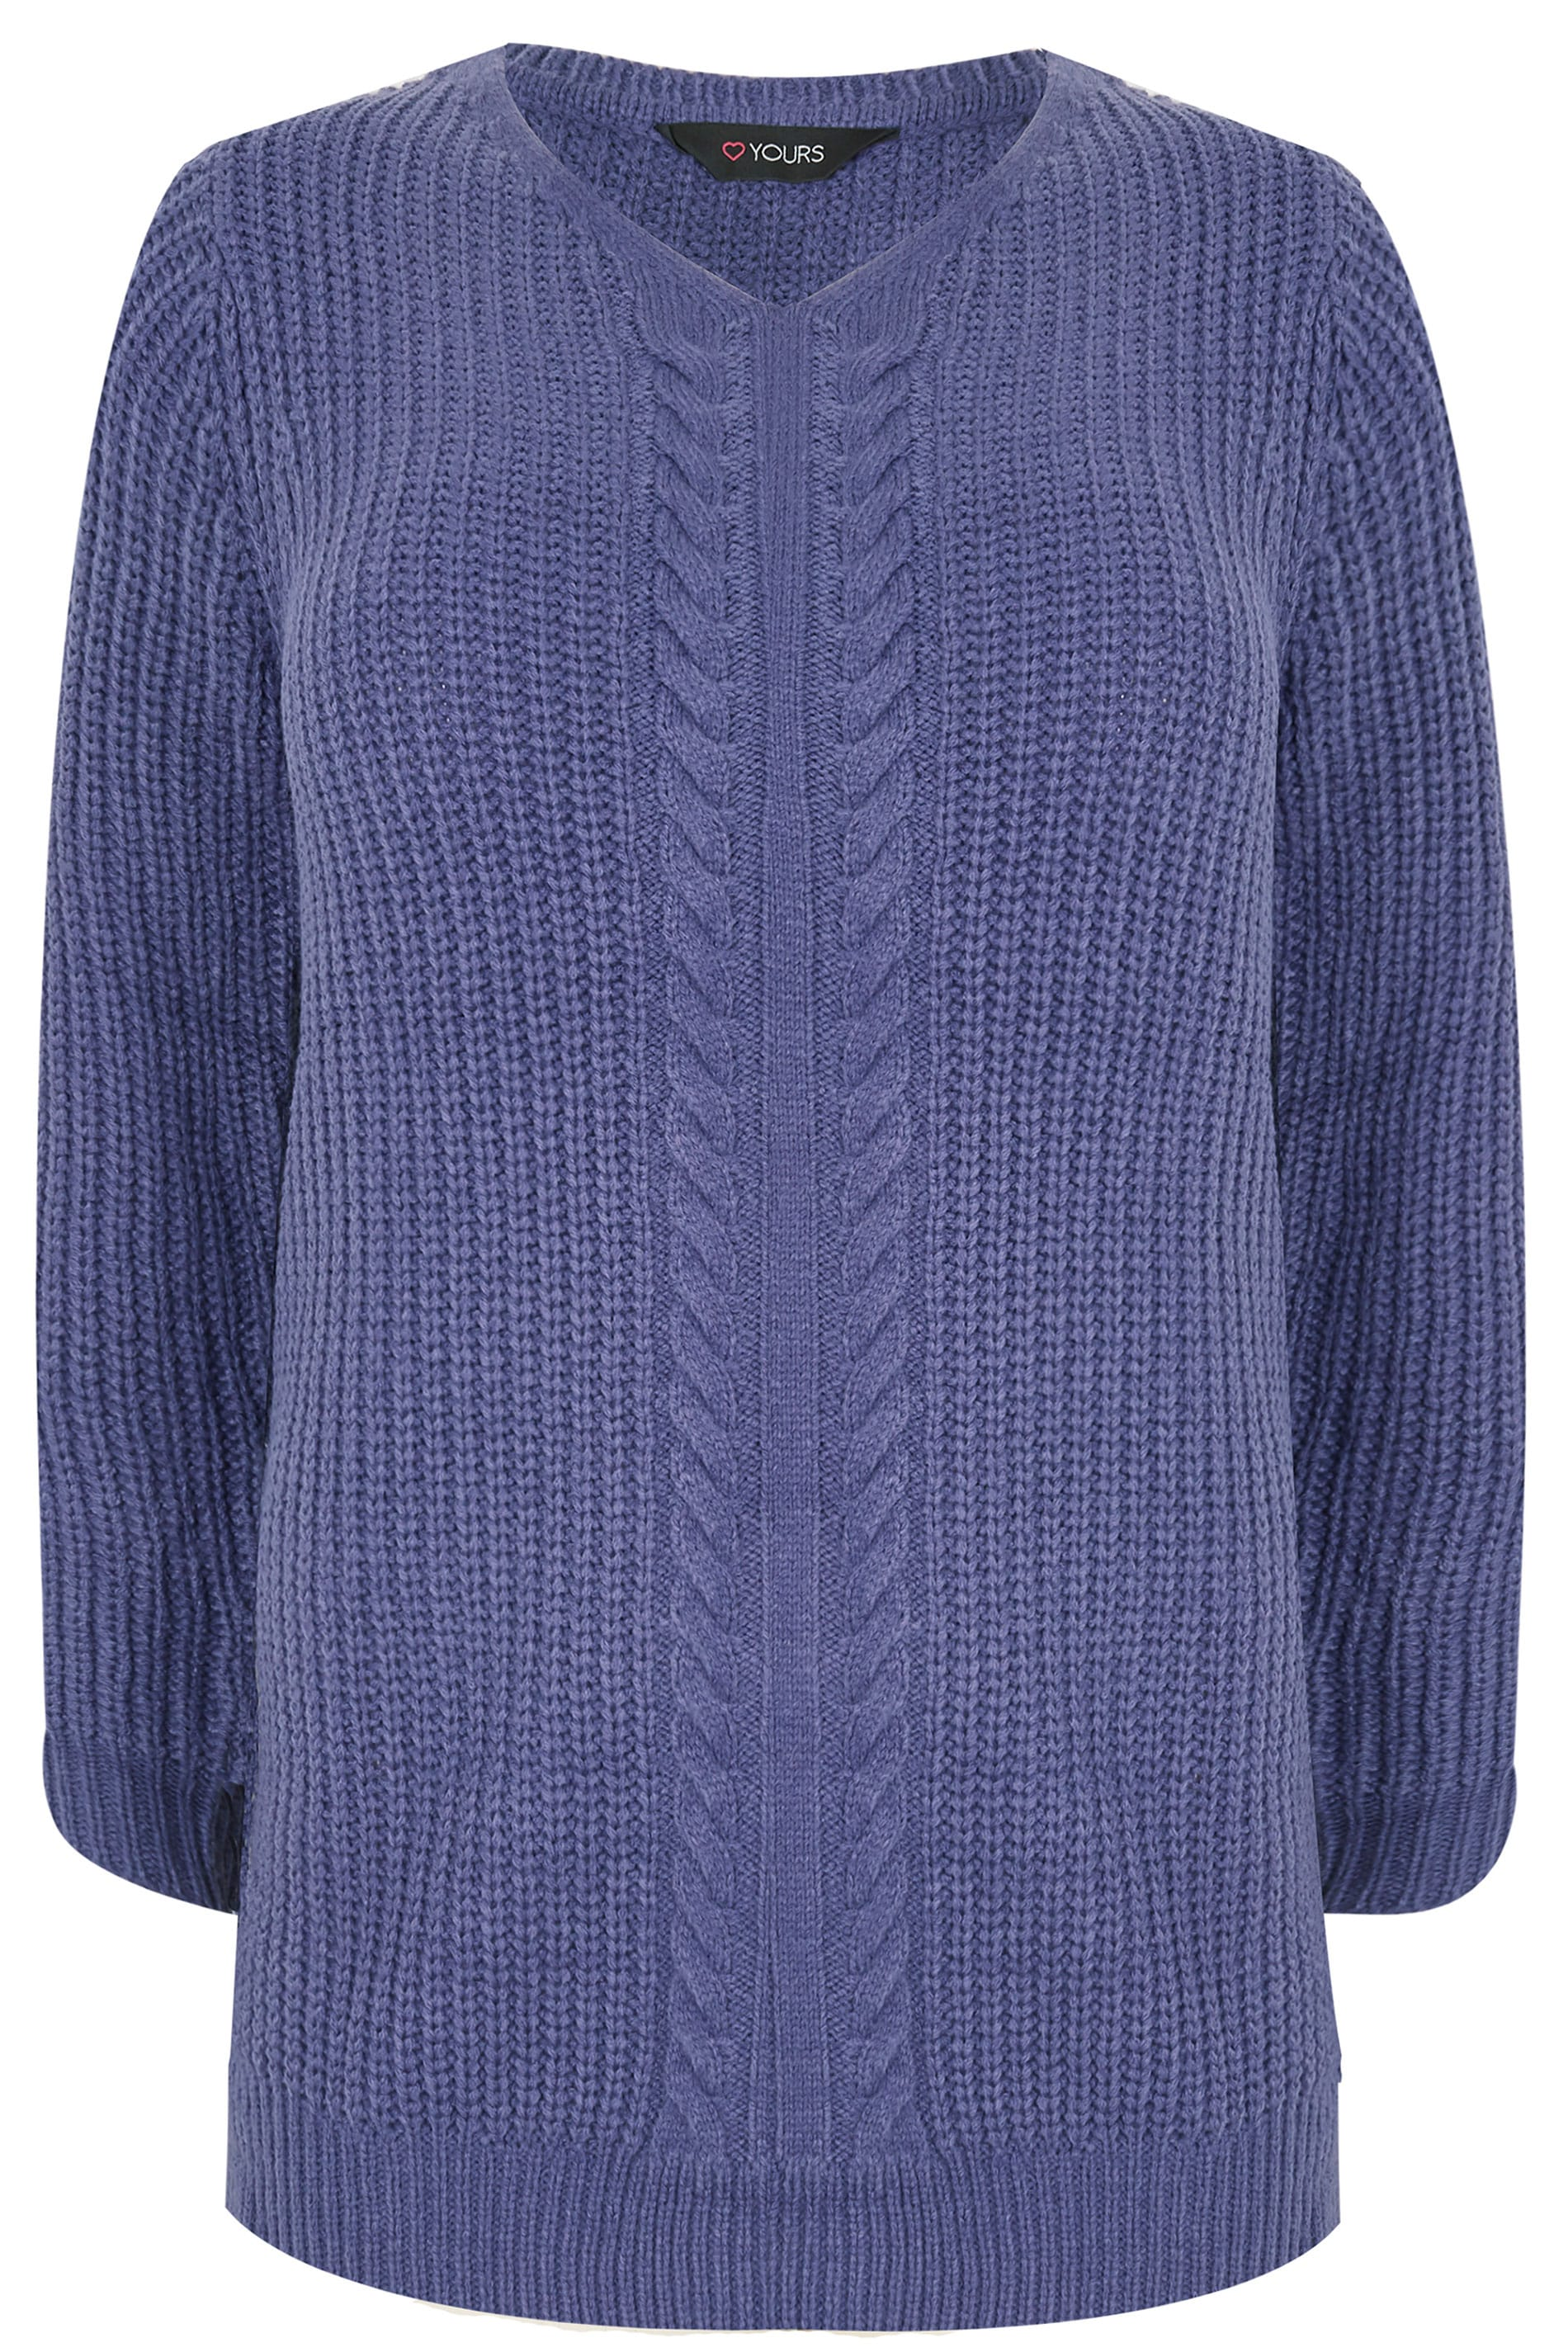 9a6e41fff5 Blue Cable Knit Jumper